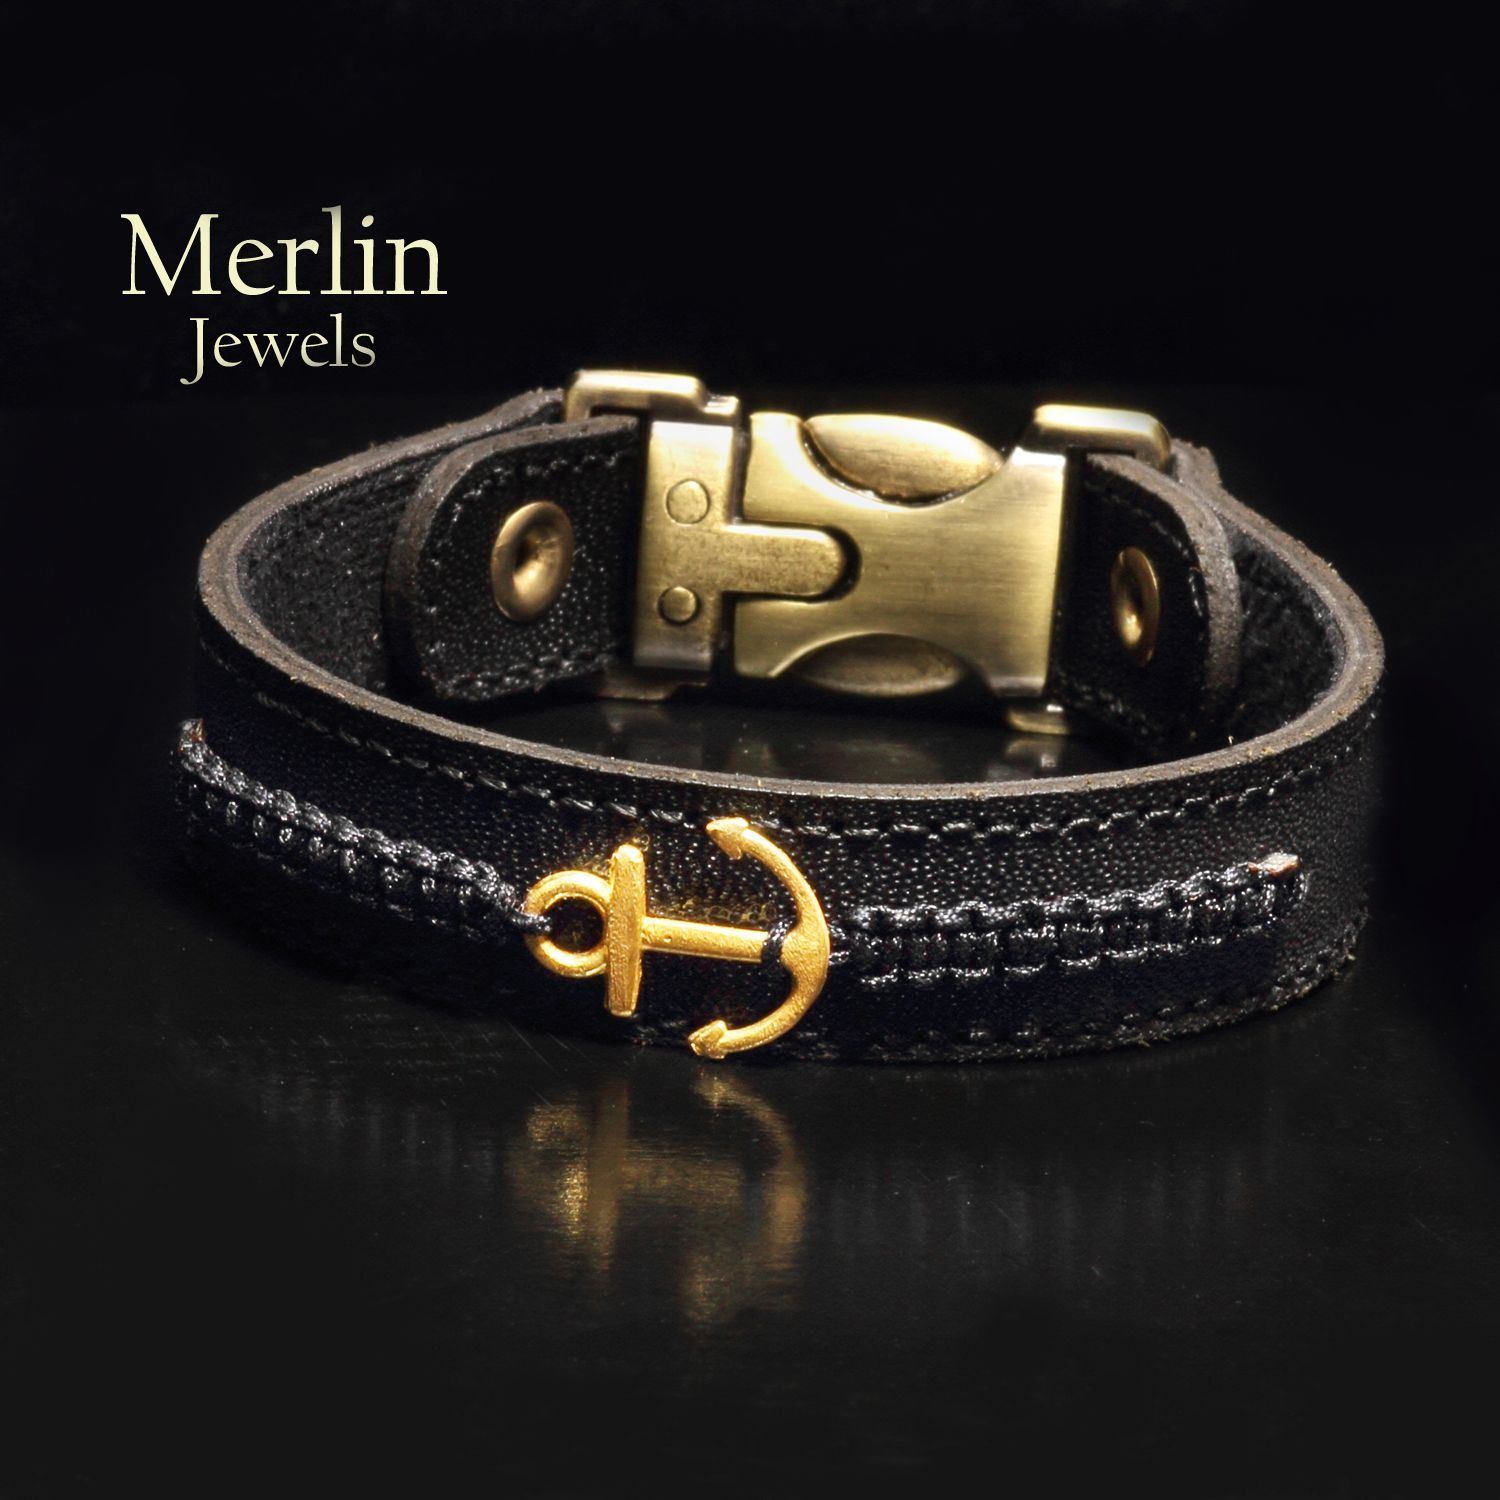 Gold on leather gold on leather bracelet leather bracelet leather